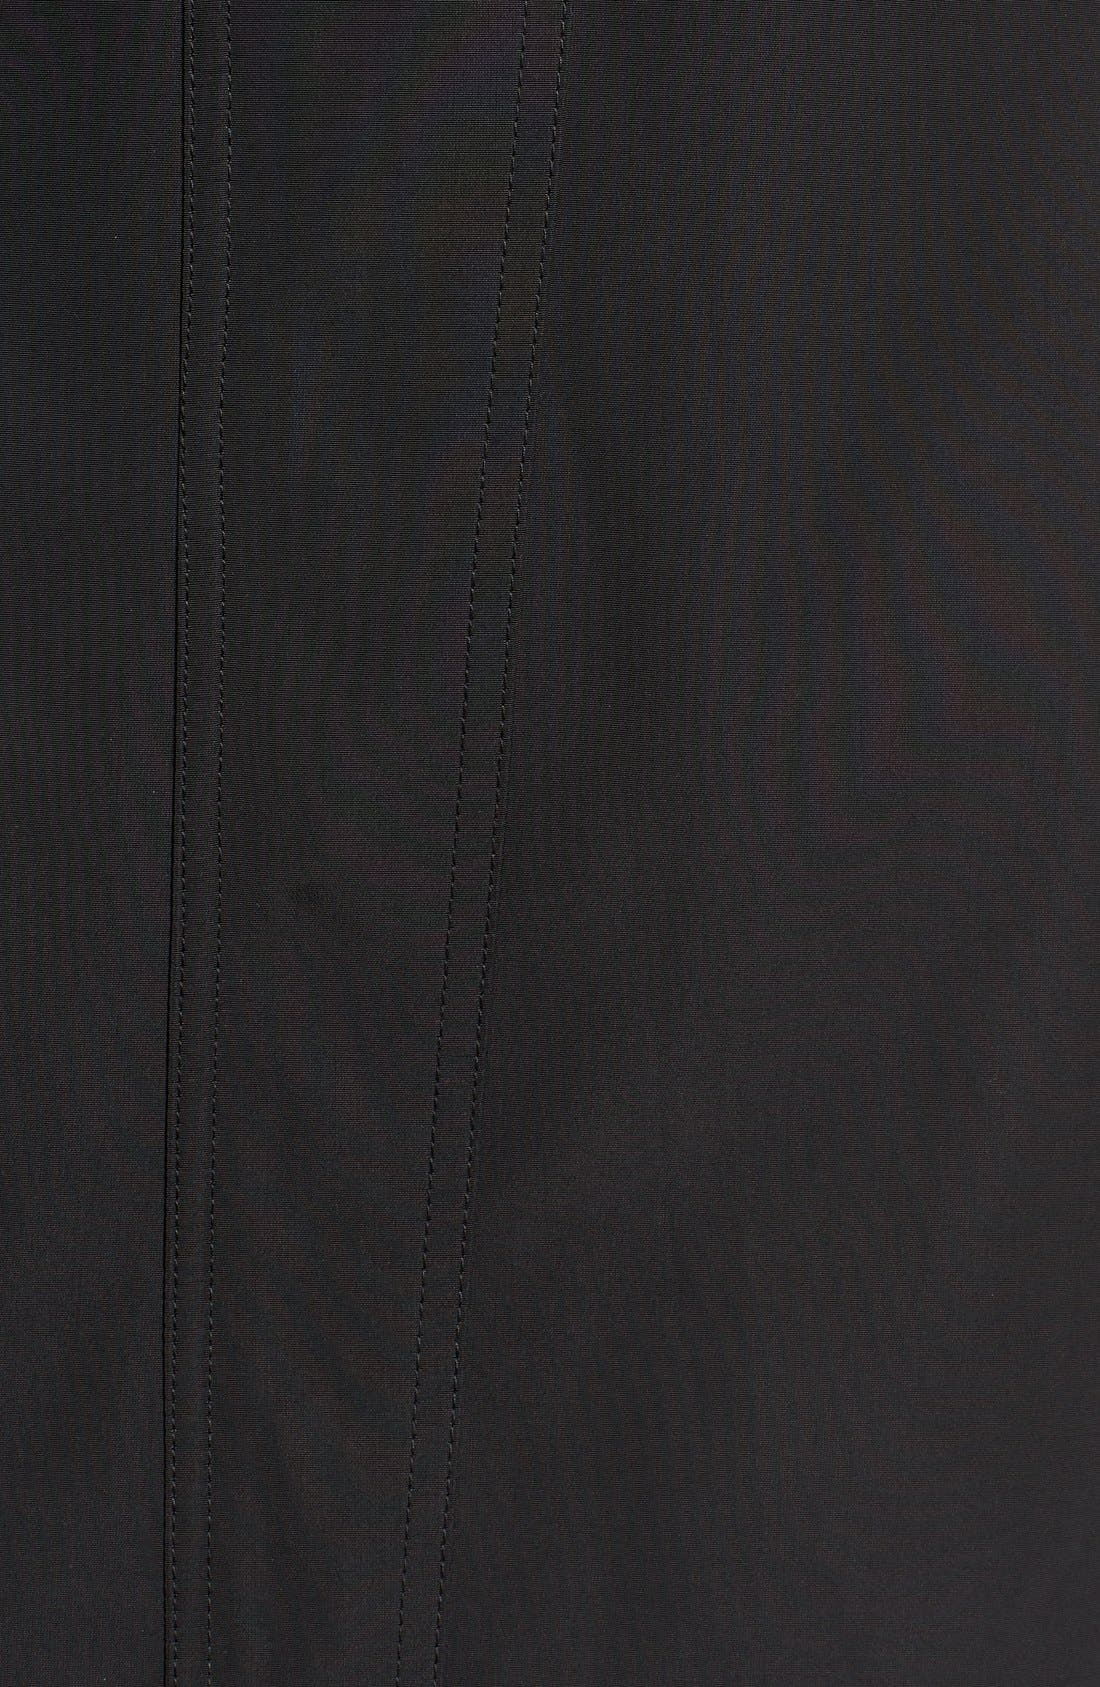 Hooded Trench Coat,                             Alternate thumbnail 5, color,                             001